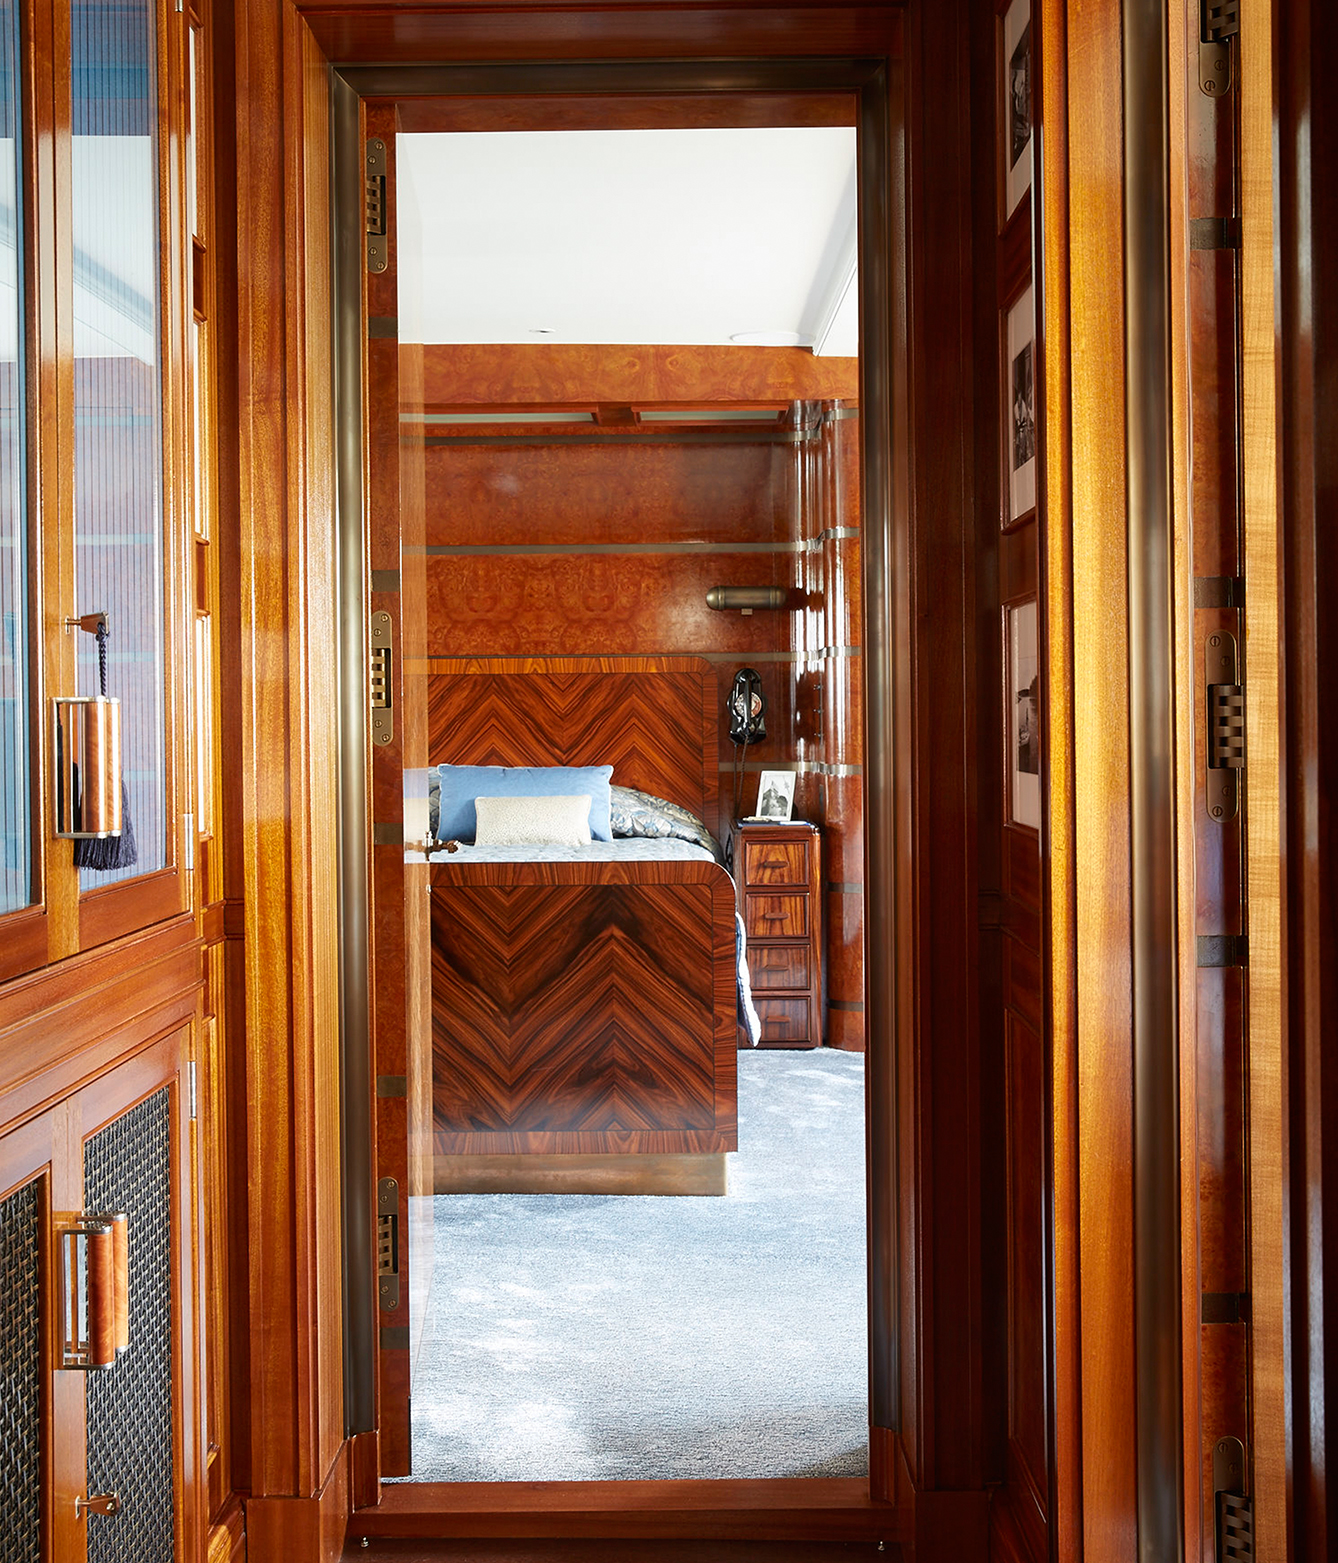 hardware in yachts Can You Handle This Trend? – Hardware In Yachts the nanz company